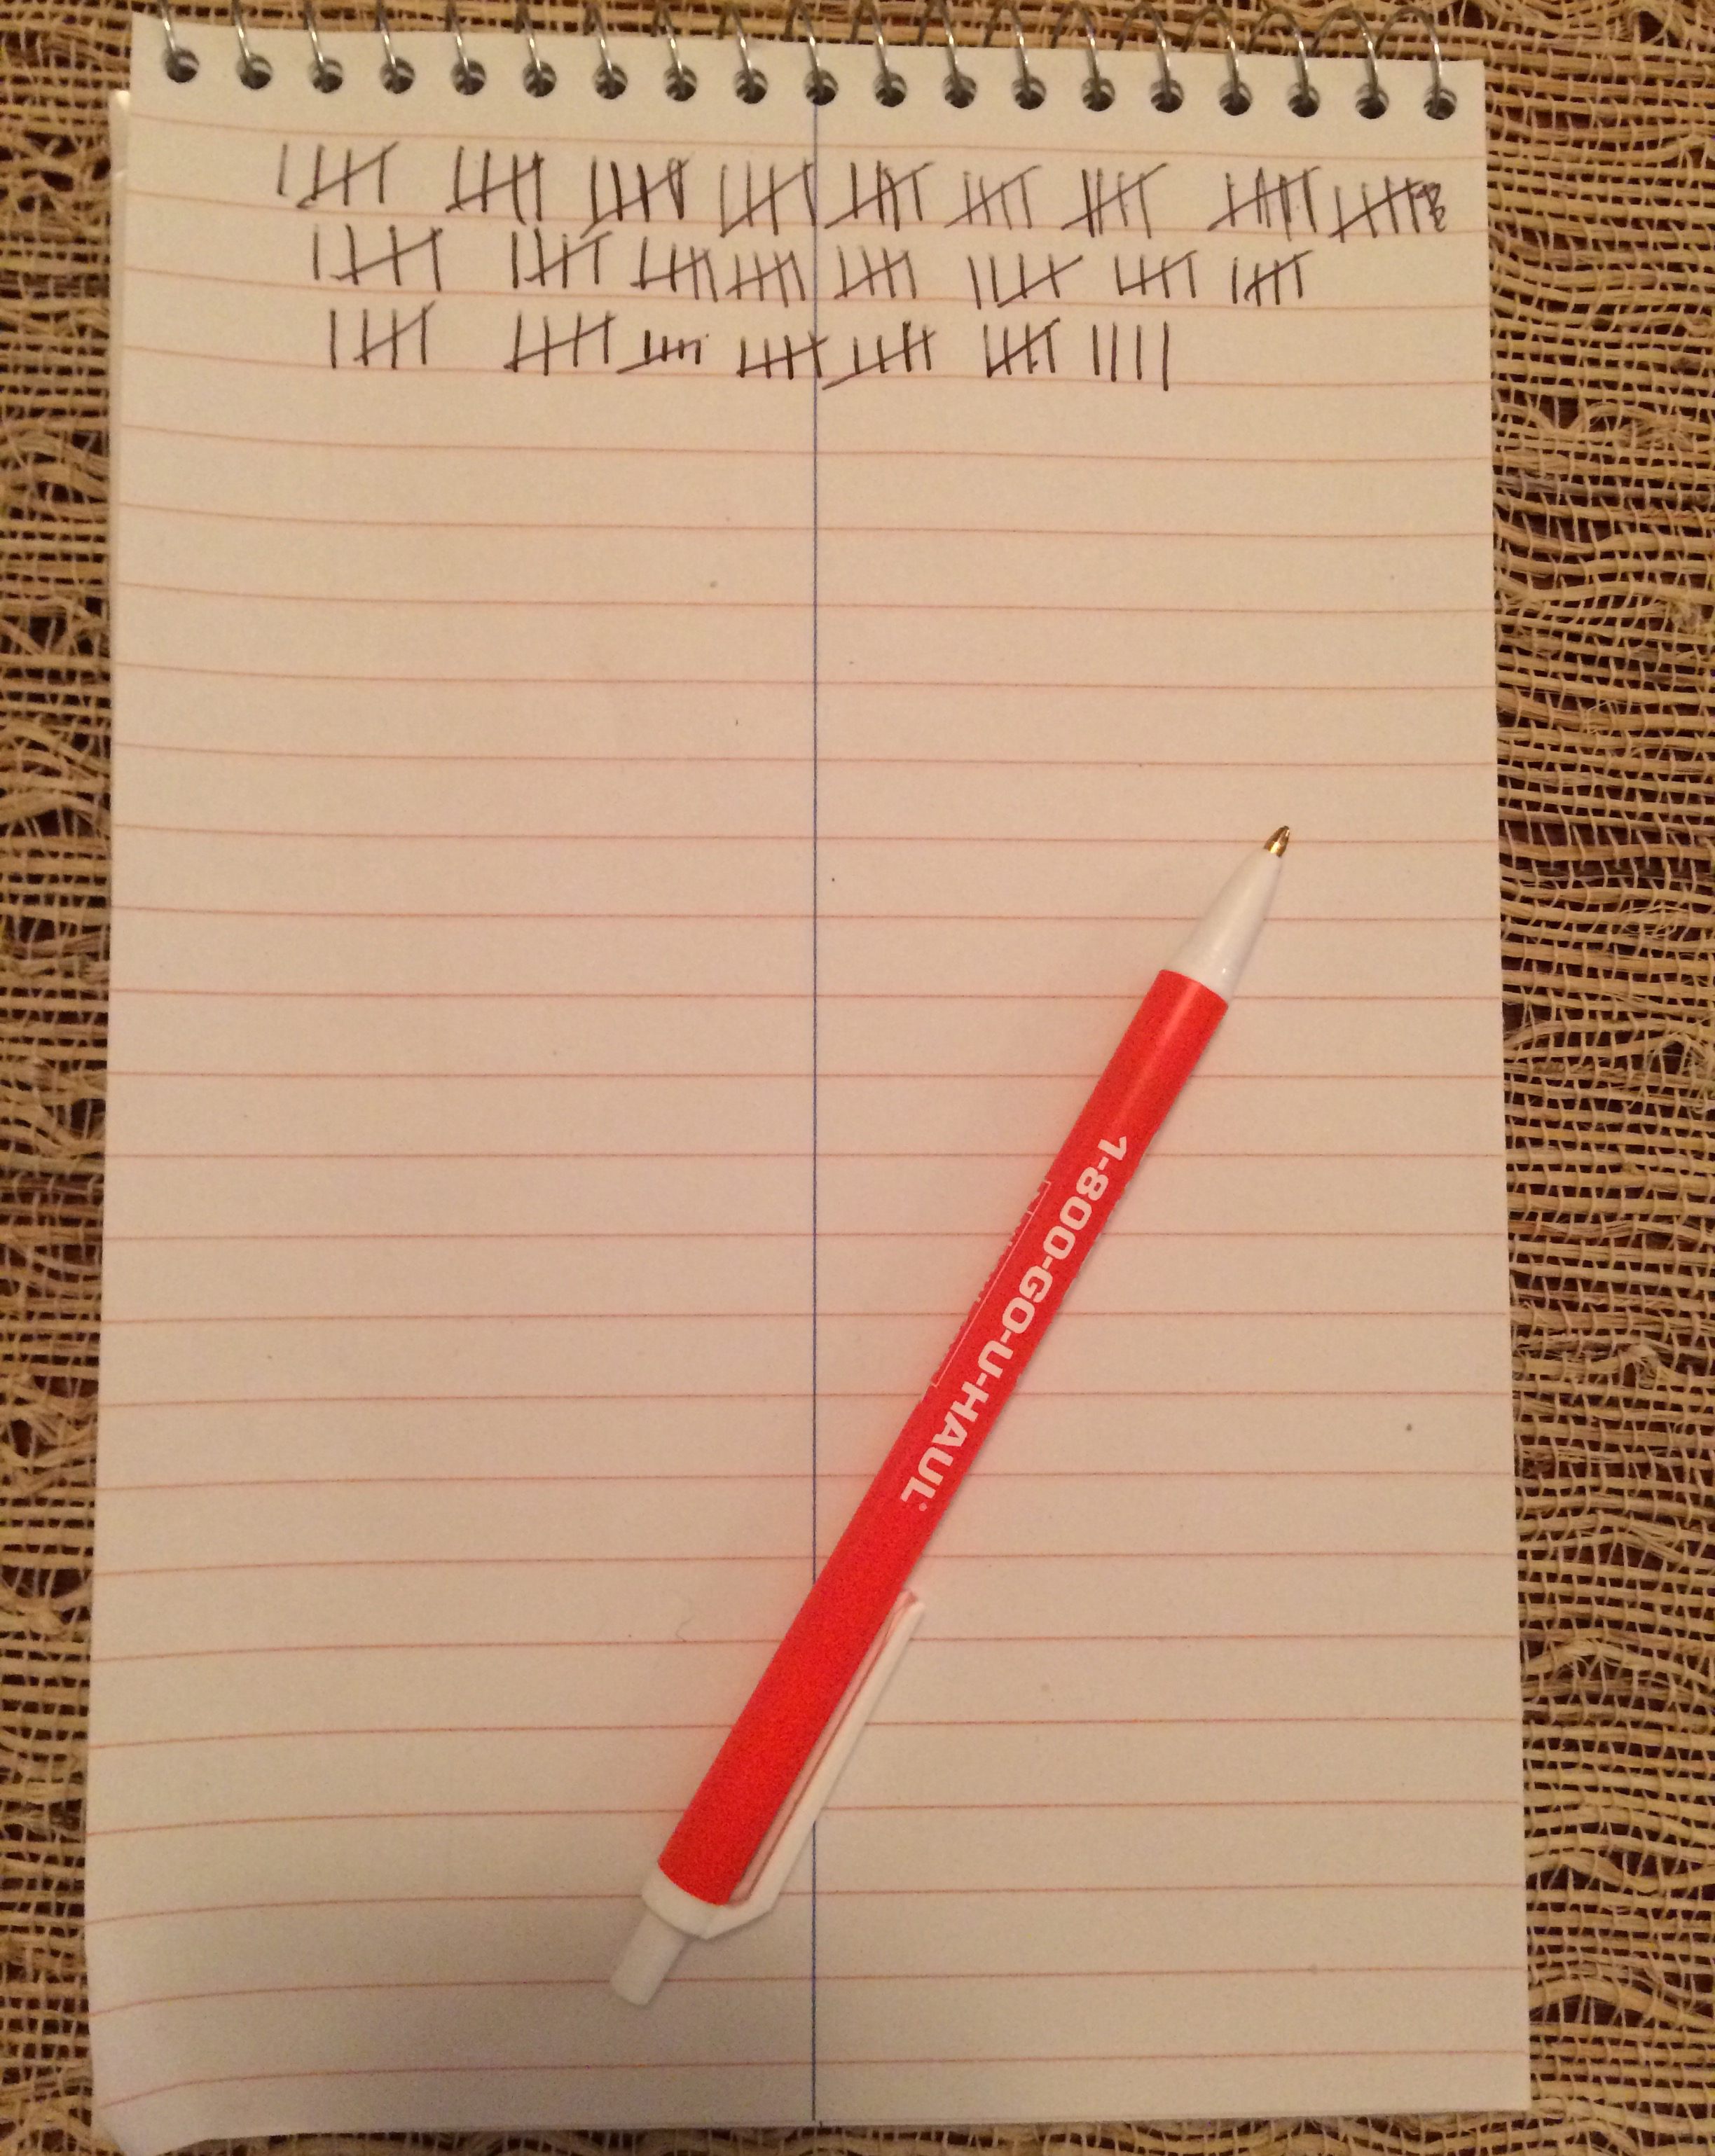 We kept a tally at my in-laws house as 119 trick-or-treaters visited their household.